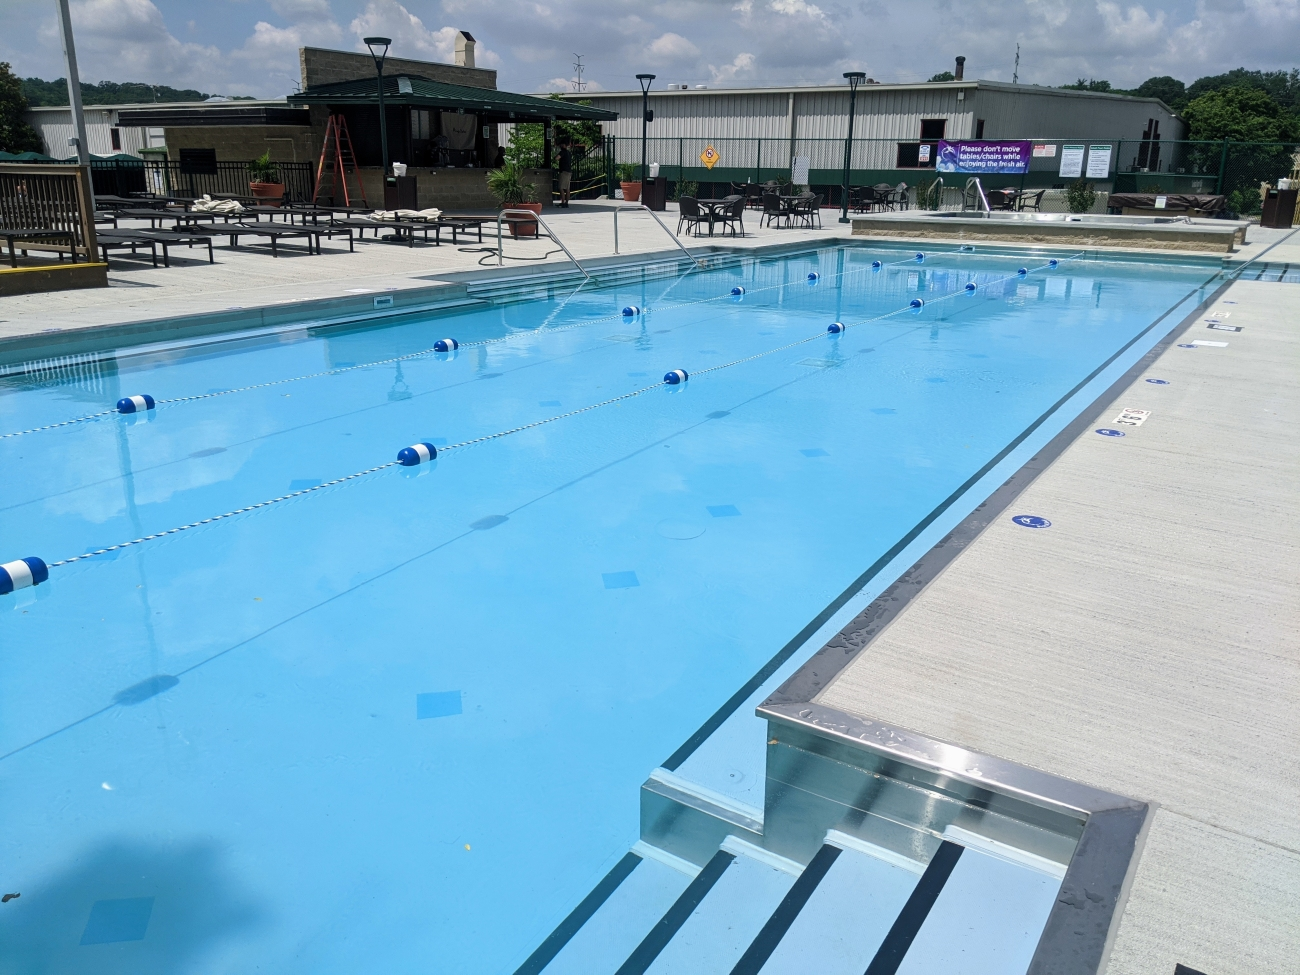 The Cincinnati Sports Club has opened an adult-only outdoor pool. The club spans 16 acres on Red Bank Road in Fairfax. Its new, 2,000-square-foot adult-only pool opened on June 6, 2020. The 25-yard pool (for ages 21 and up) is the eighth aquatic facility for the club. ADDRESS: 3950 Red Bank Road (45227) / Image courtesy of Cincinnati Sports Club // Published: 6.27.20